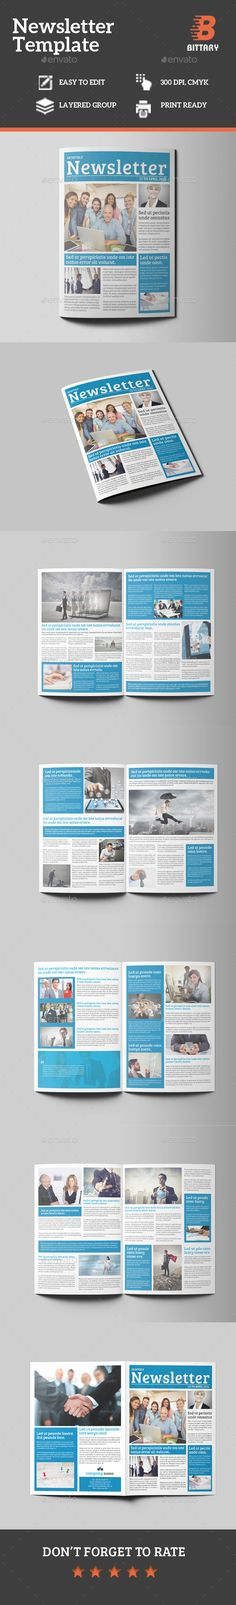 Business Newsletter This Is A Template Fully Editable In InDesign Features Created On Adobe Indesign Print Dimension Mm